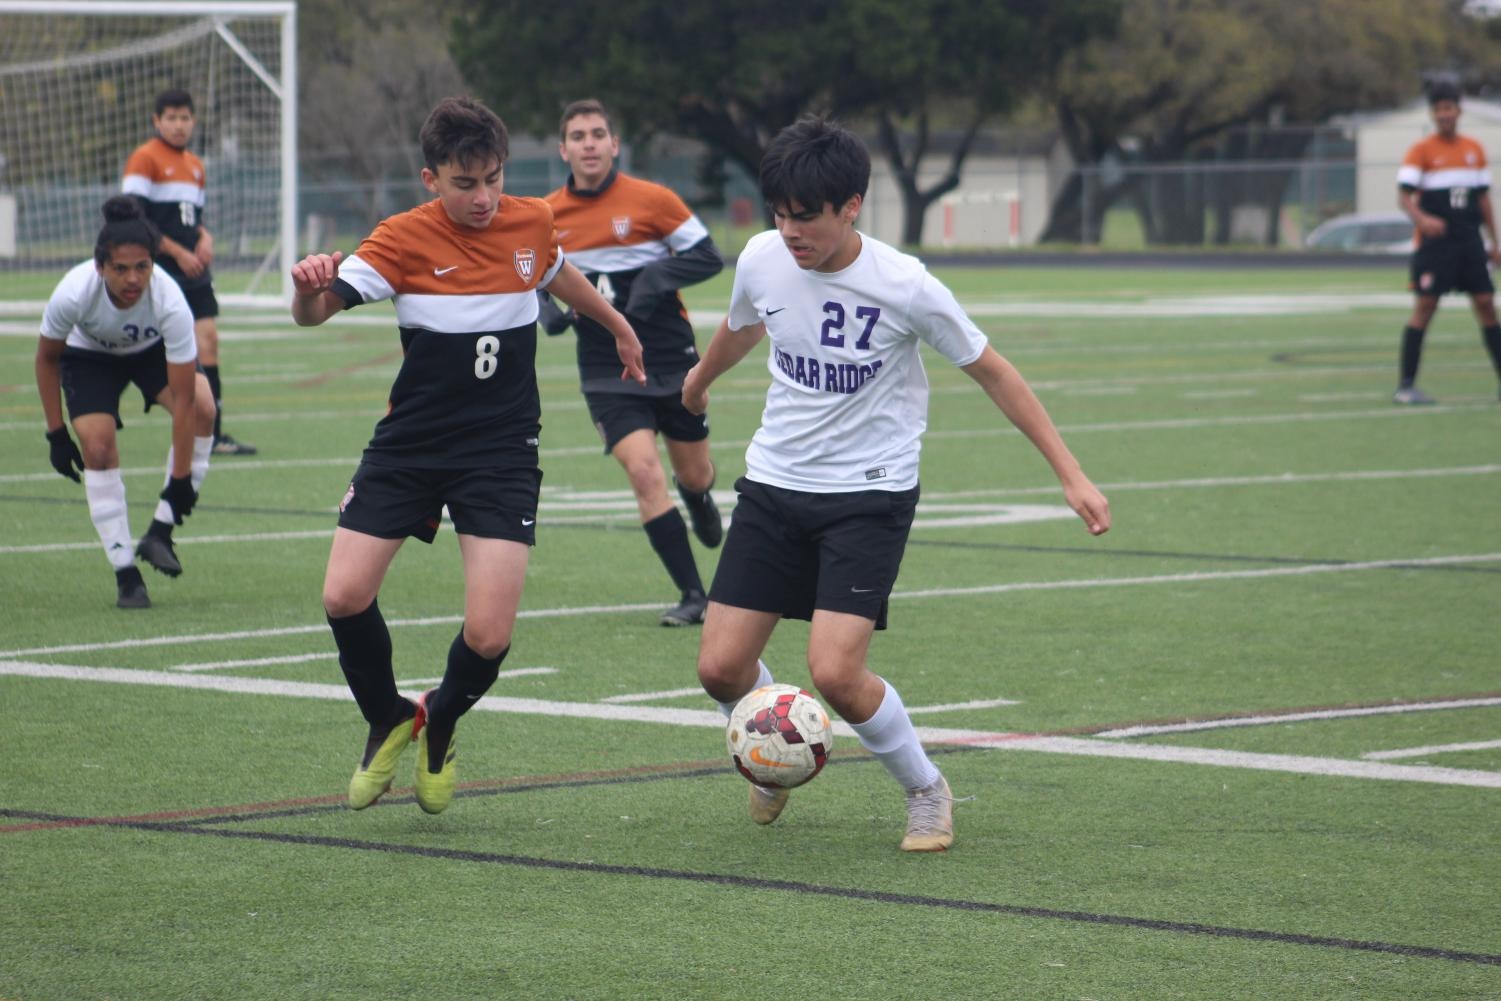 Boys%27+JV+White+Soccer+Conclude+Season+with+Draw+Against+Cedar+Ridge